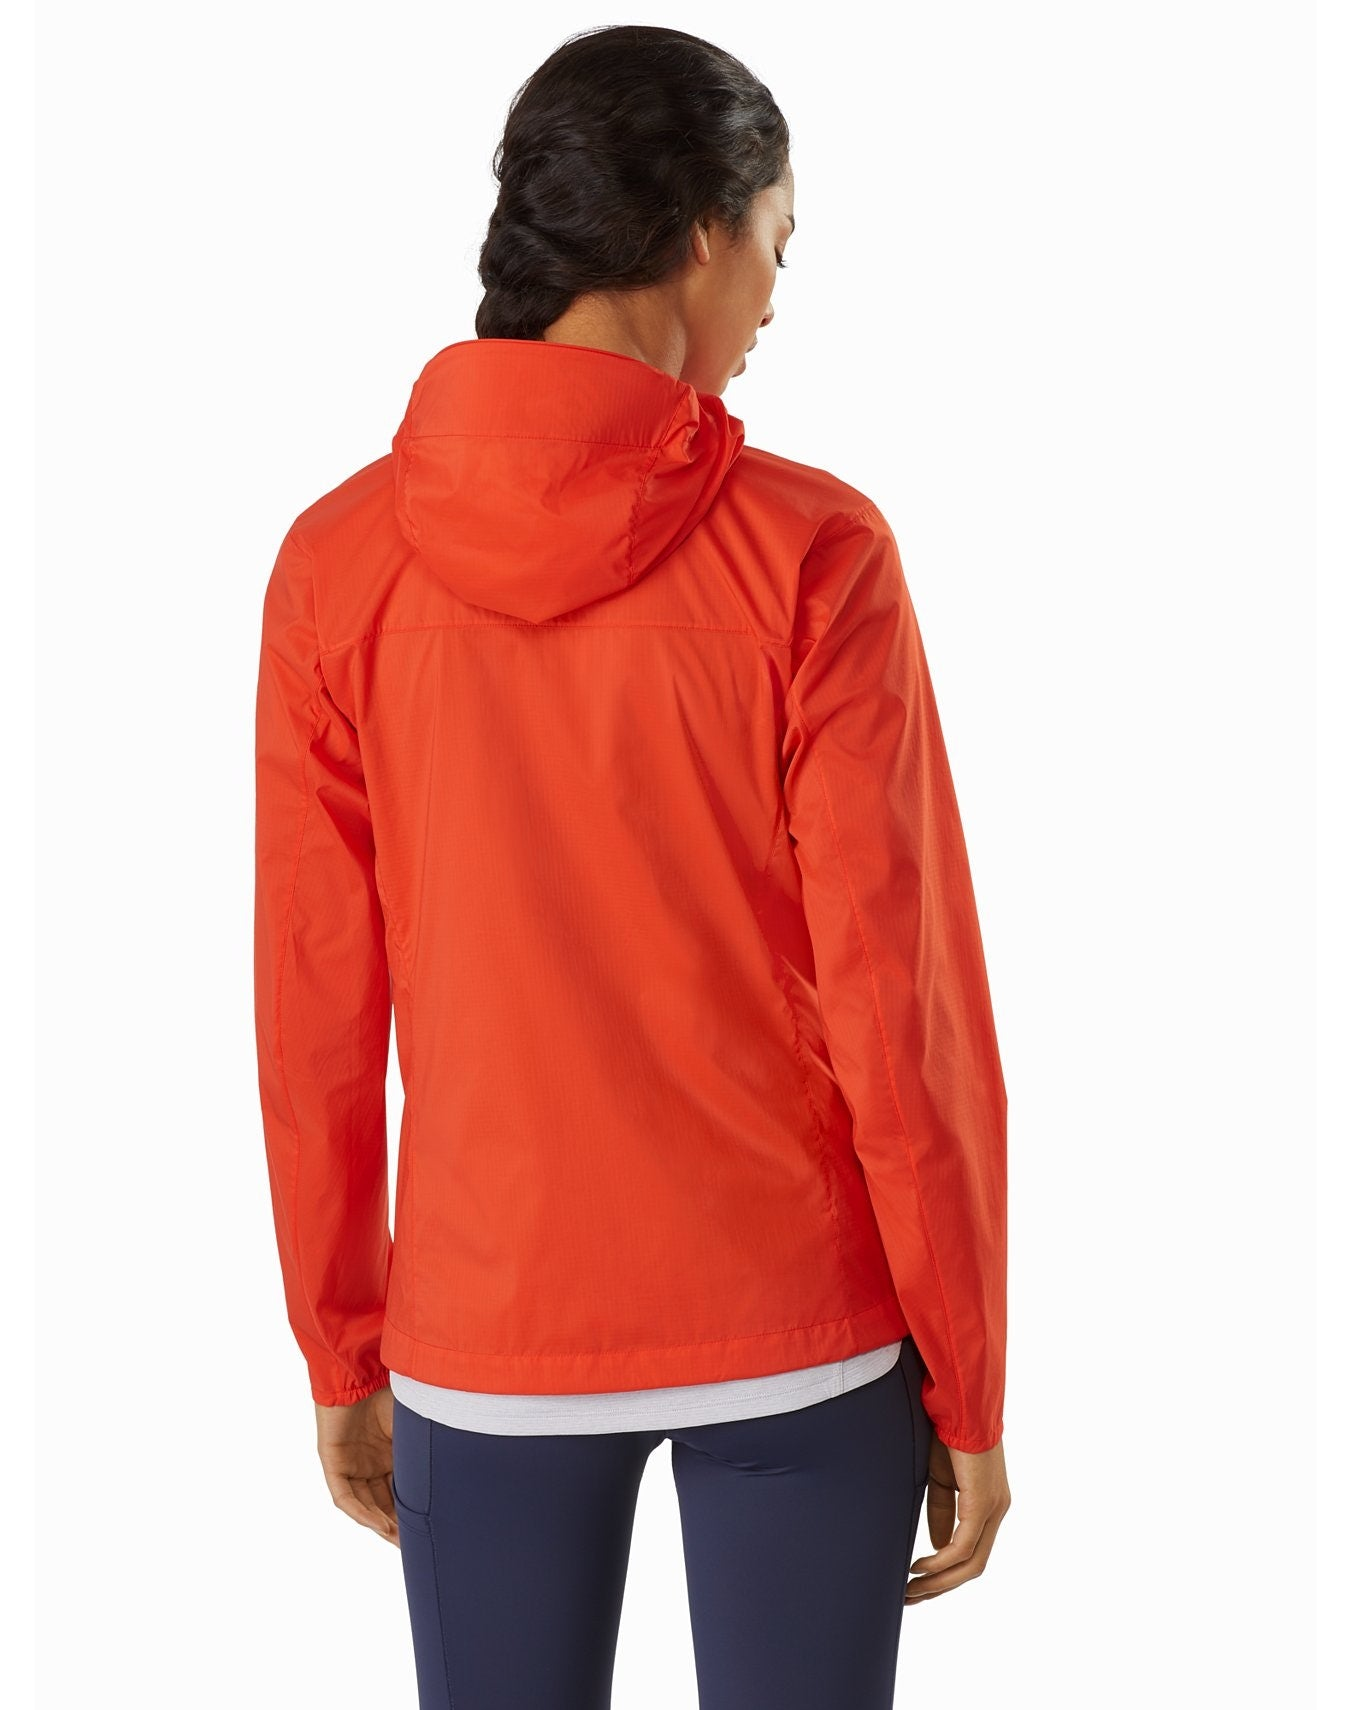 ARC'TERYX W'S WINDBREAKERS SQUAMISH HOODY